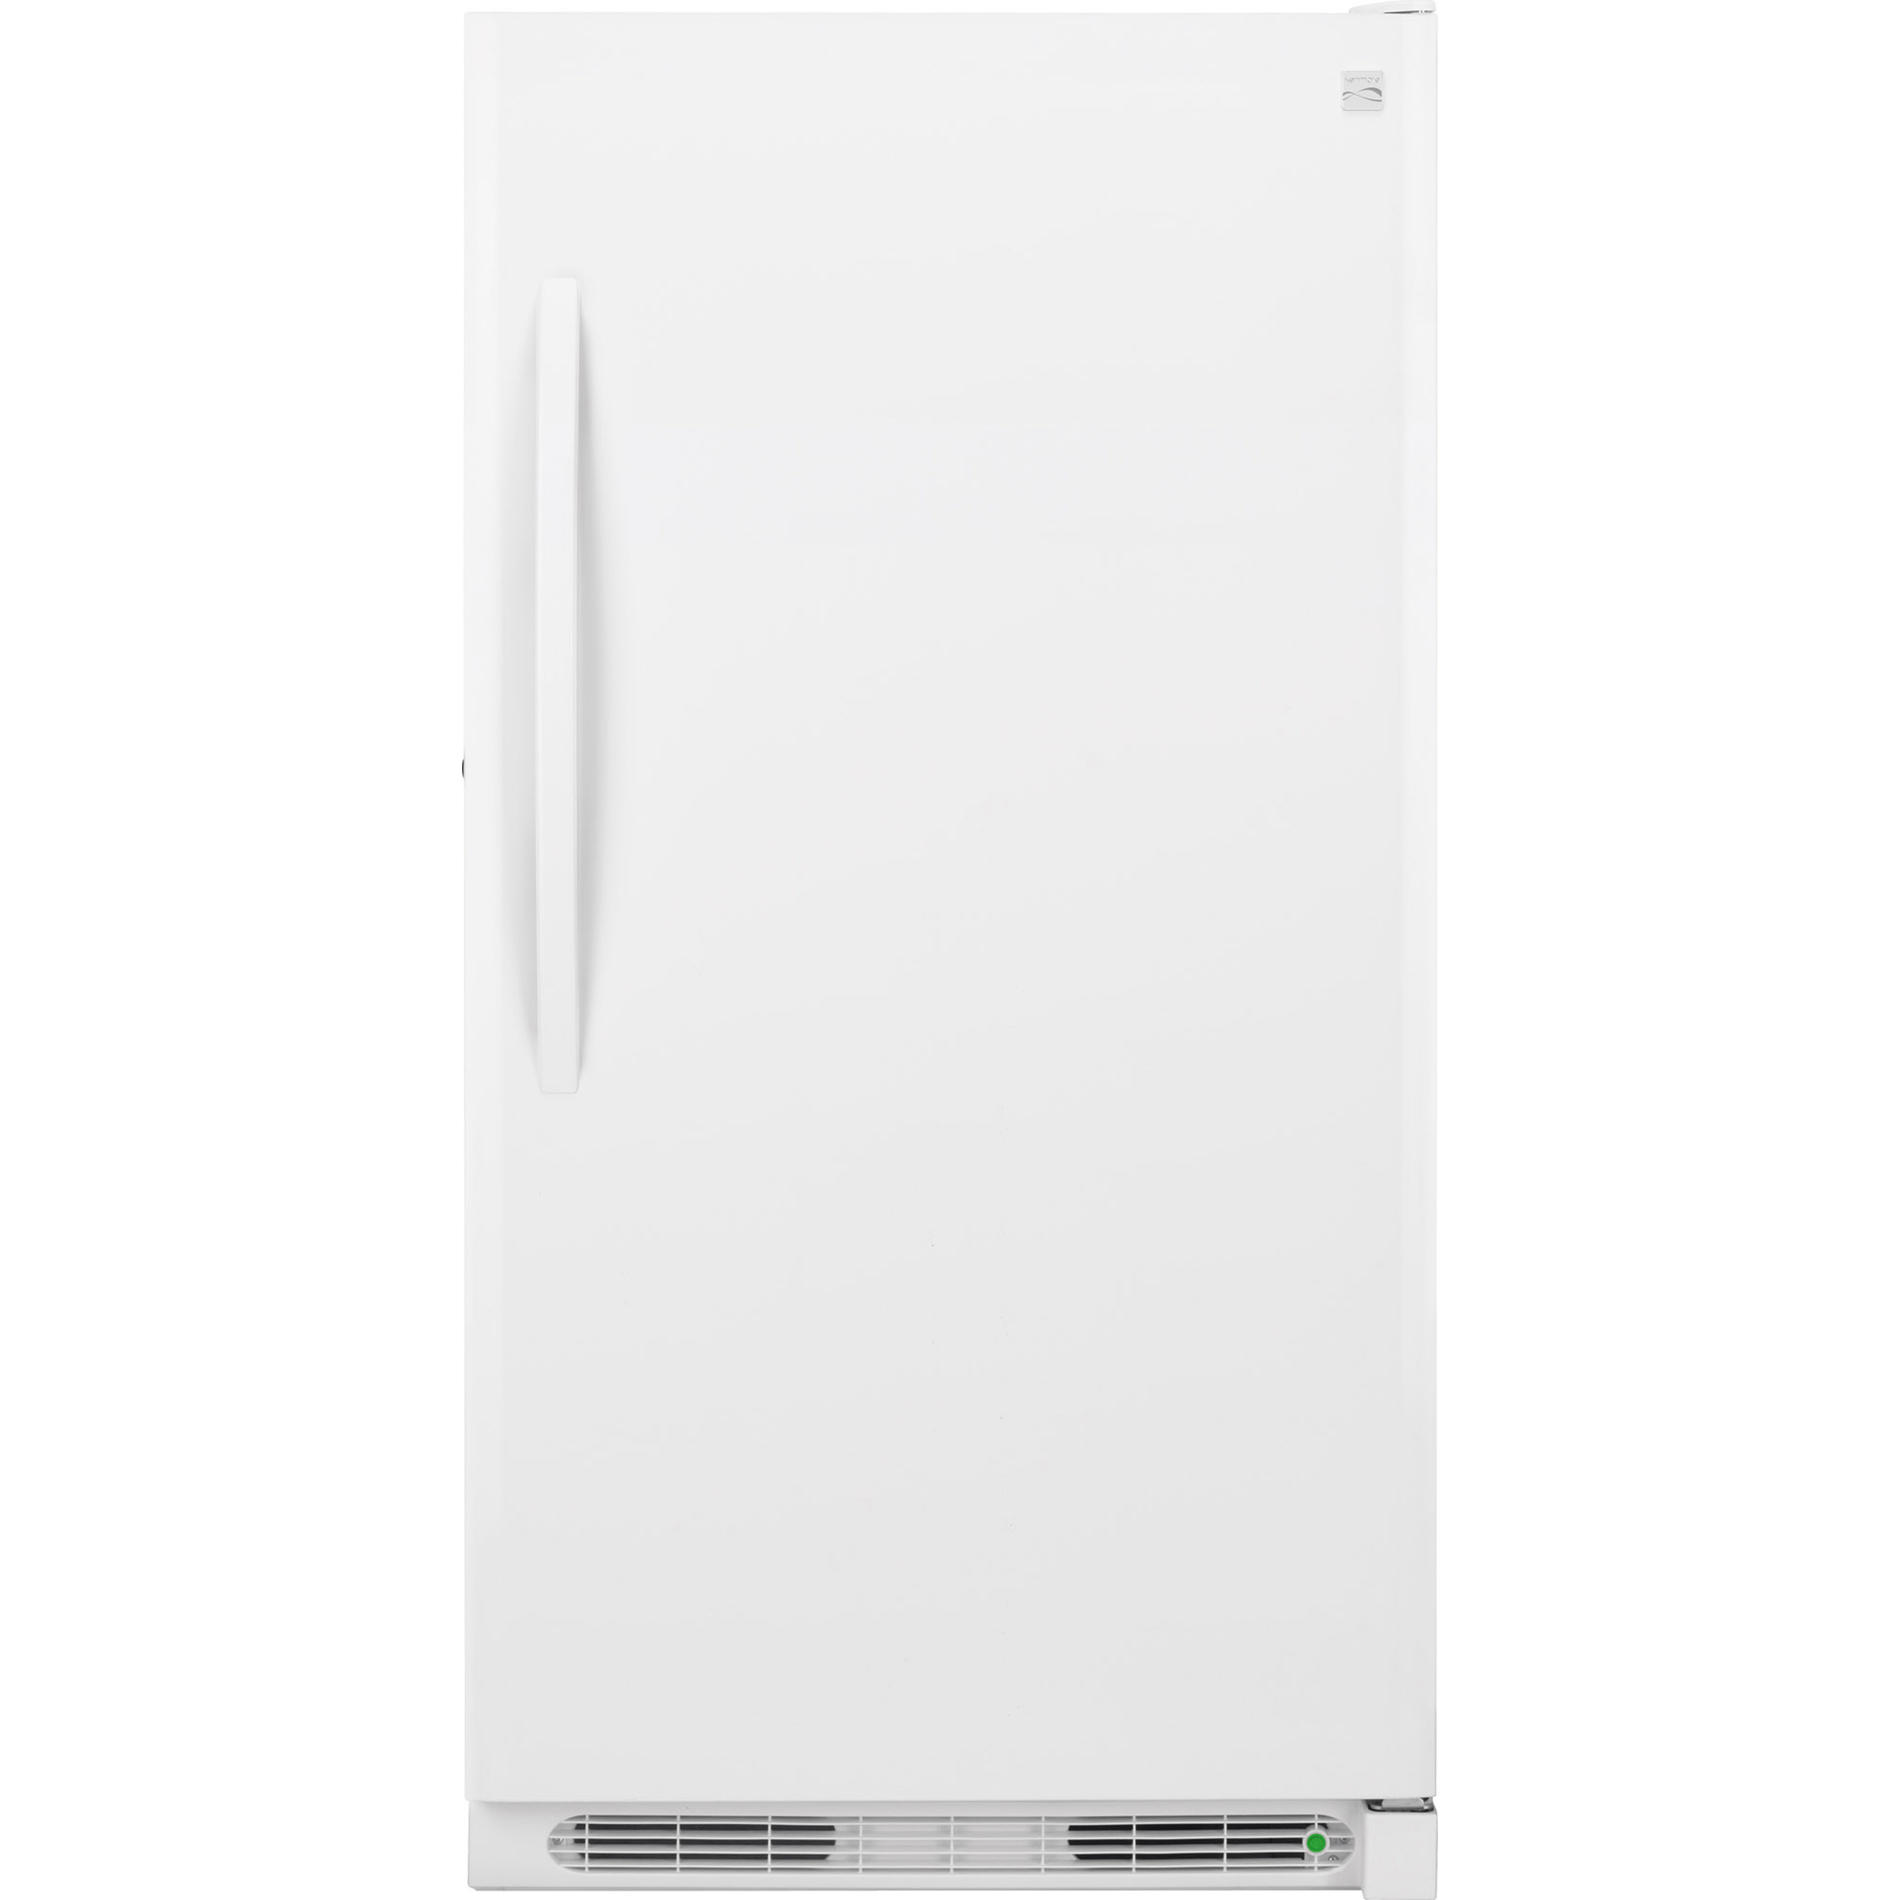 22042-20-2-cu-ft-Upright-Freezer-White